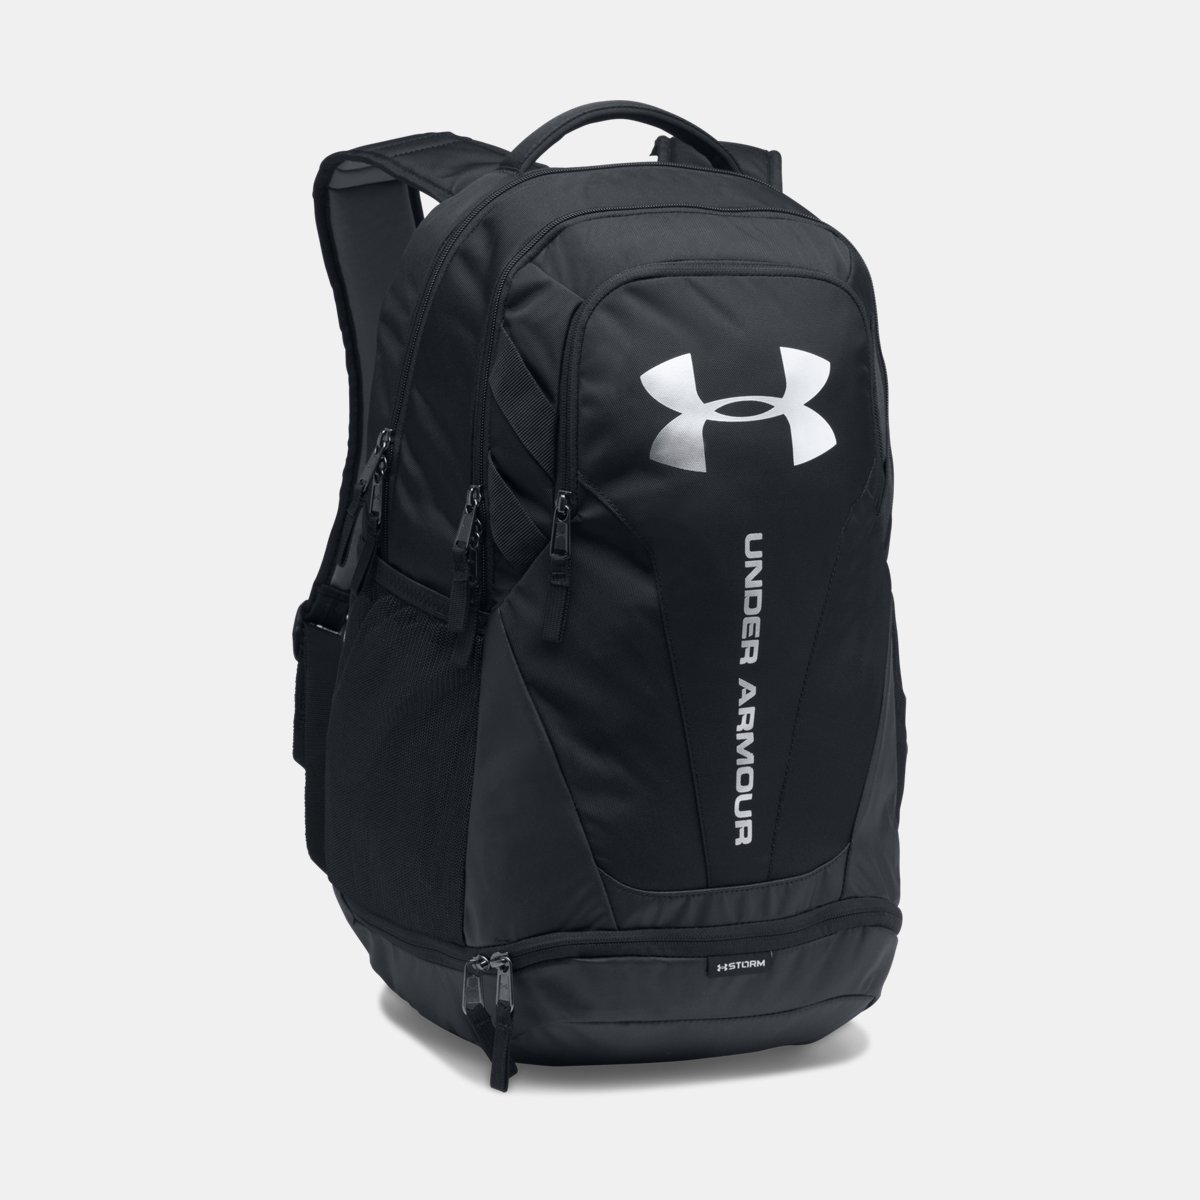 [UNDER ARMOUR] アンダーアーマー Men's UA Hustle 3.0 Backpack Black /Black [並行輸入品] B0753BK2RJ